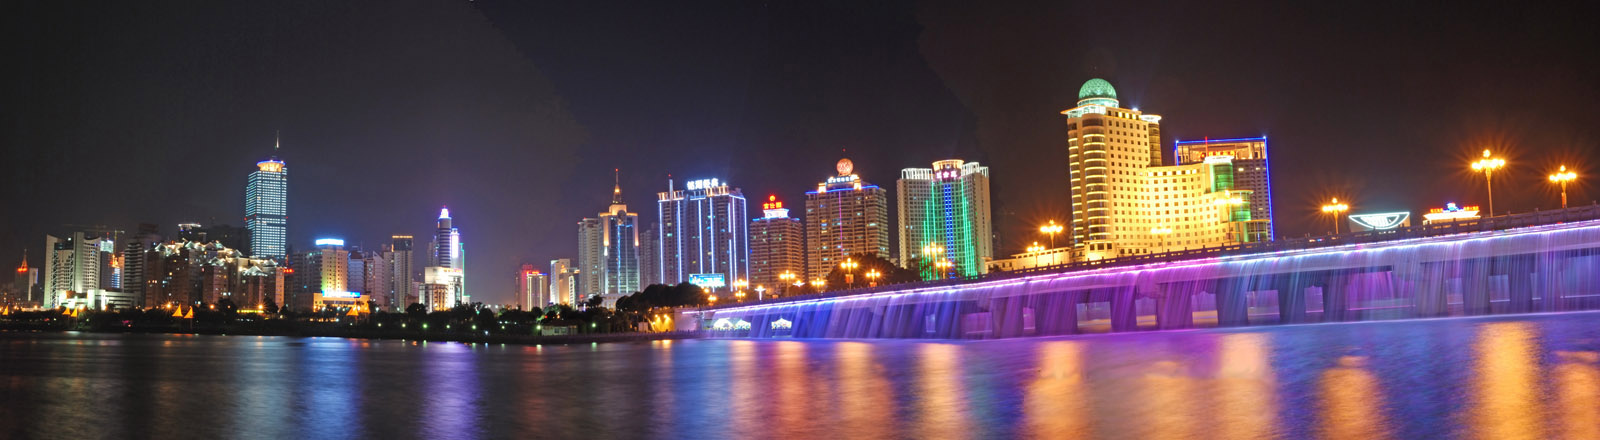 Nanhu Bridge Waterfall